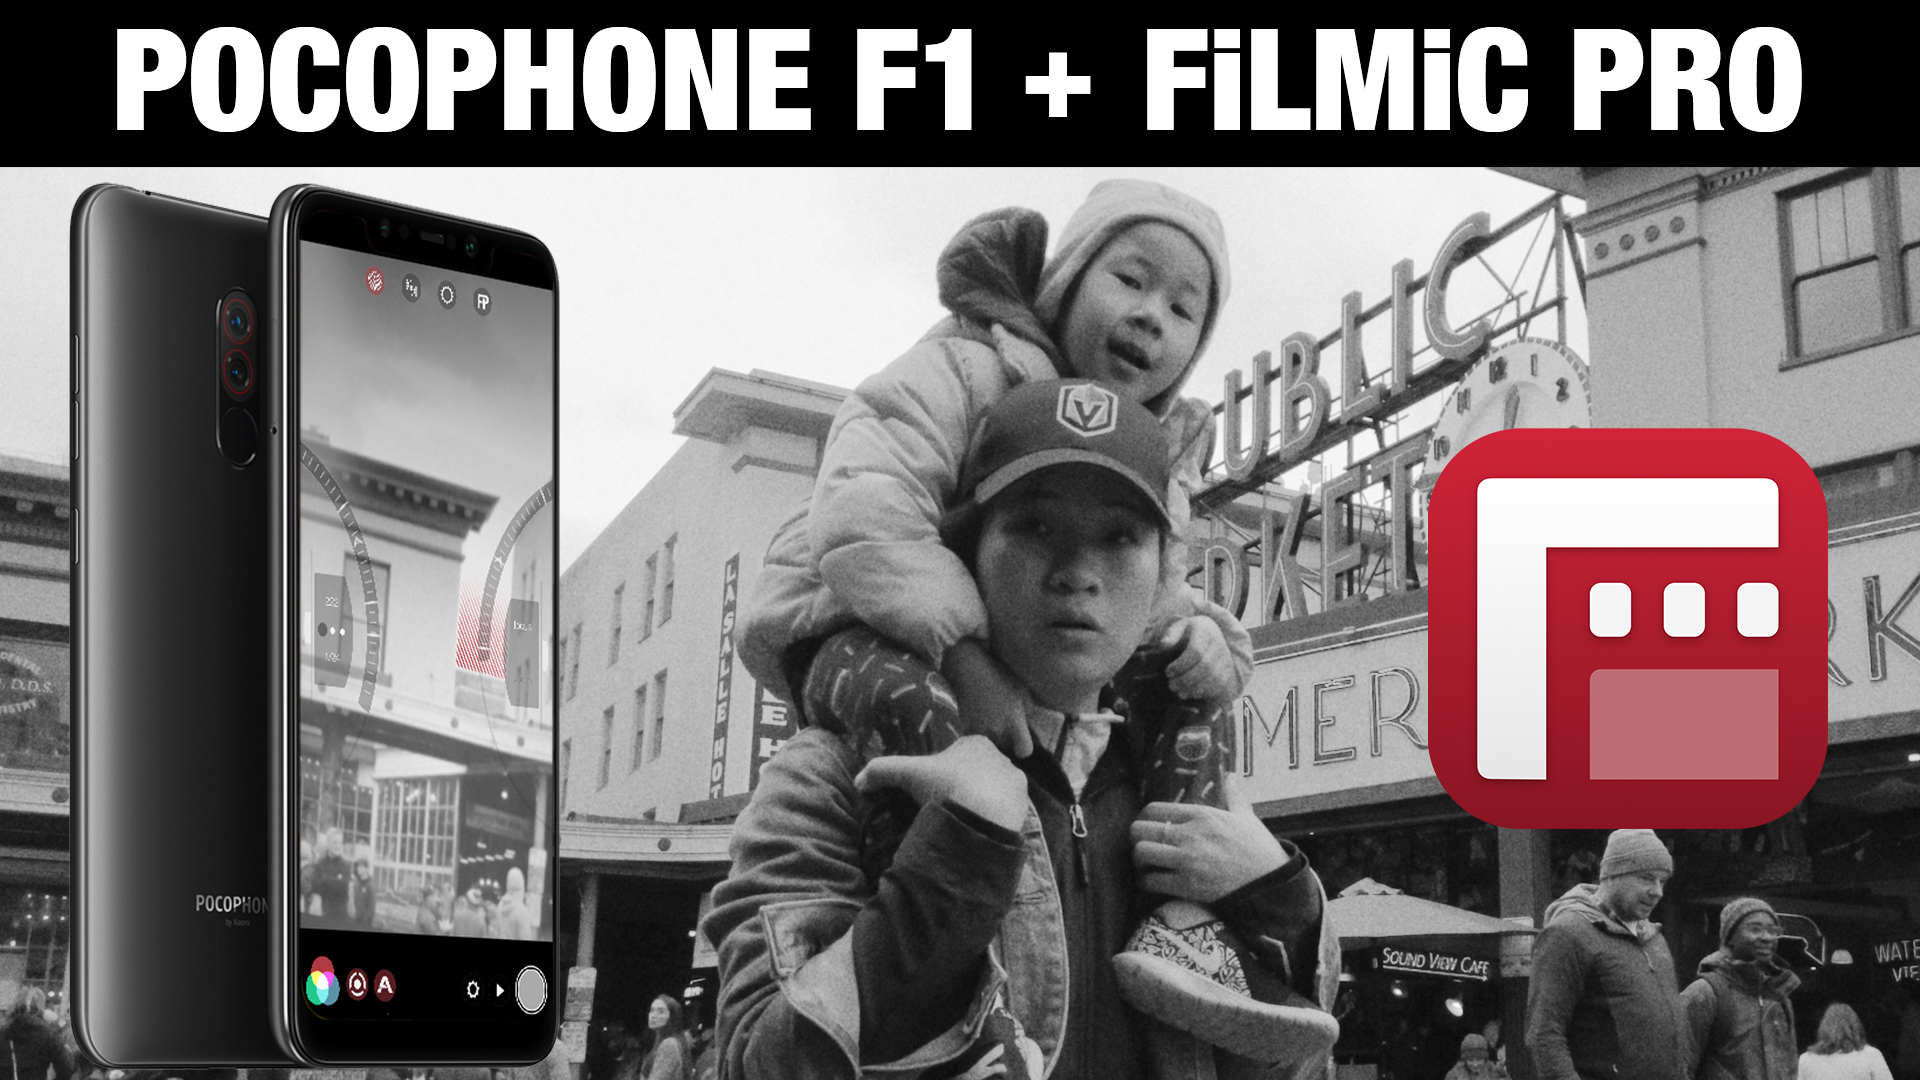 Best Budget Android Smartphone for Pro Video Using FiLMiC